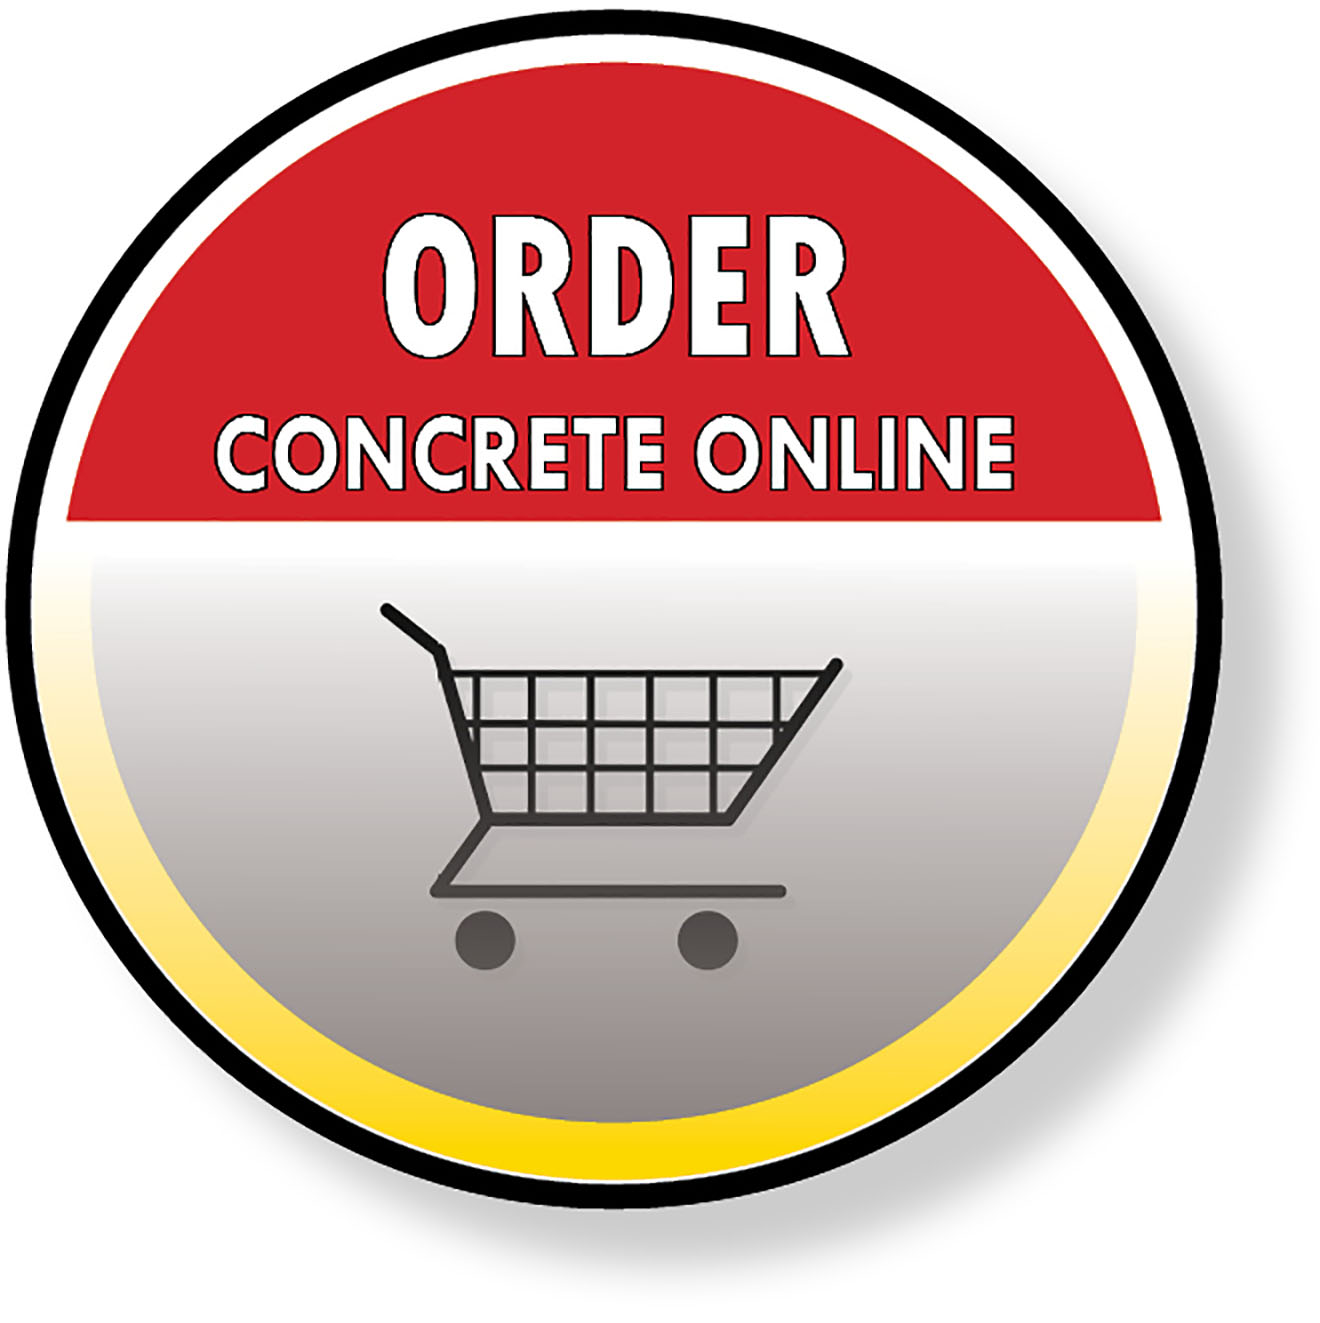 Place your concrete order request and receive a same day call back from a Cranesville representative. No wait time, no hassles.